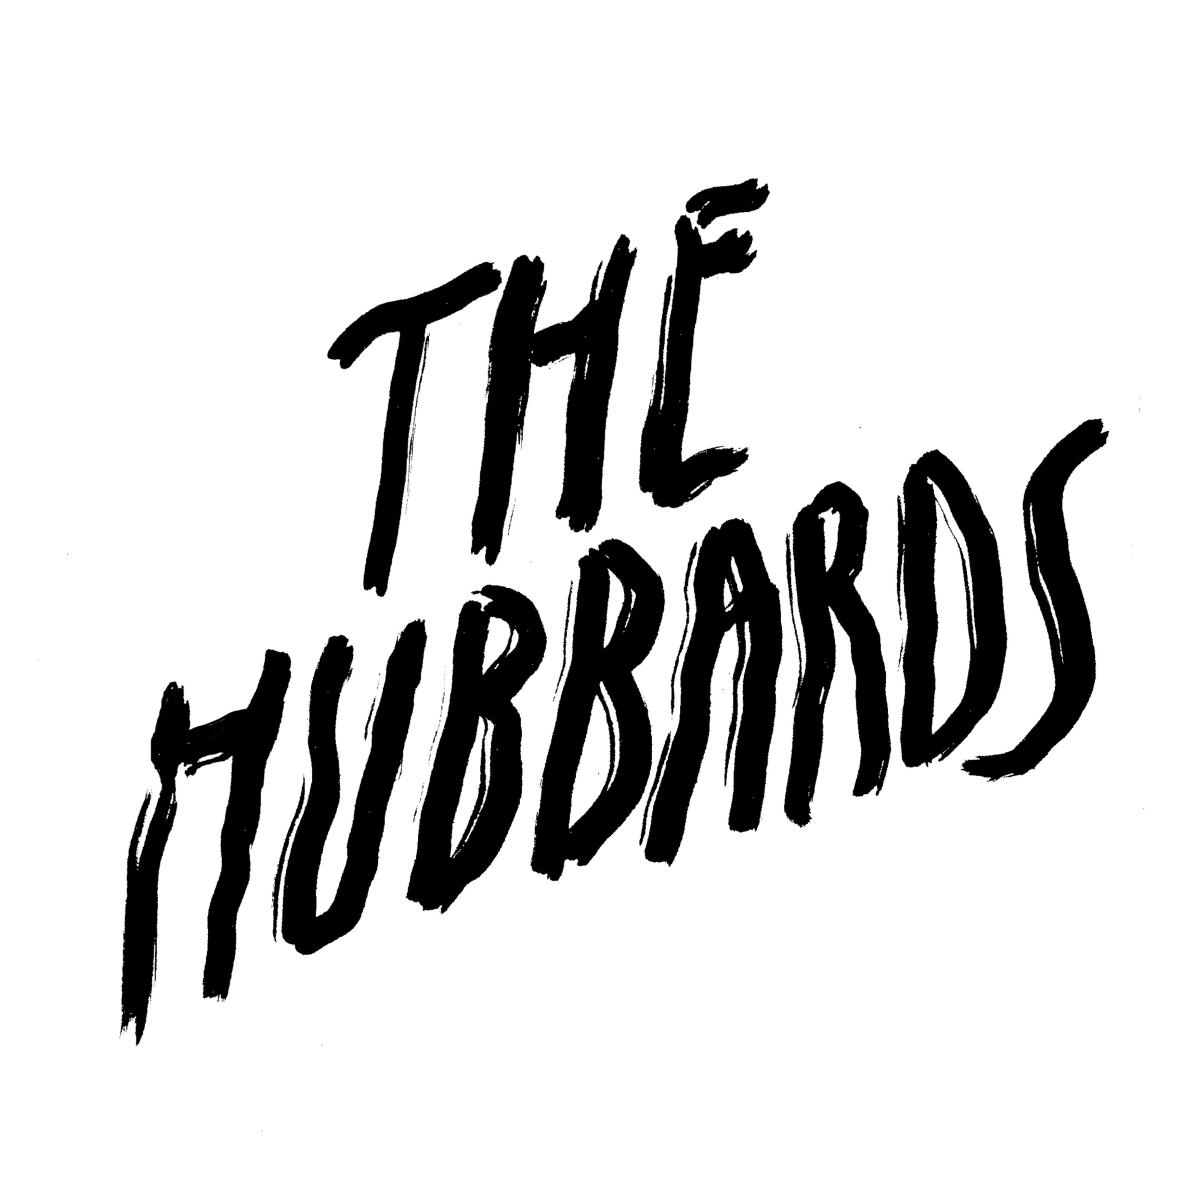 The Hubbards – 'Easy Go' Single Review